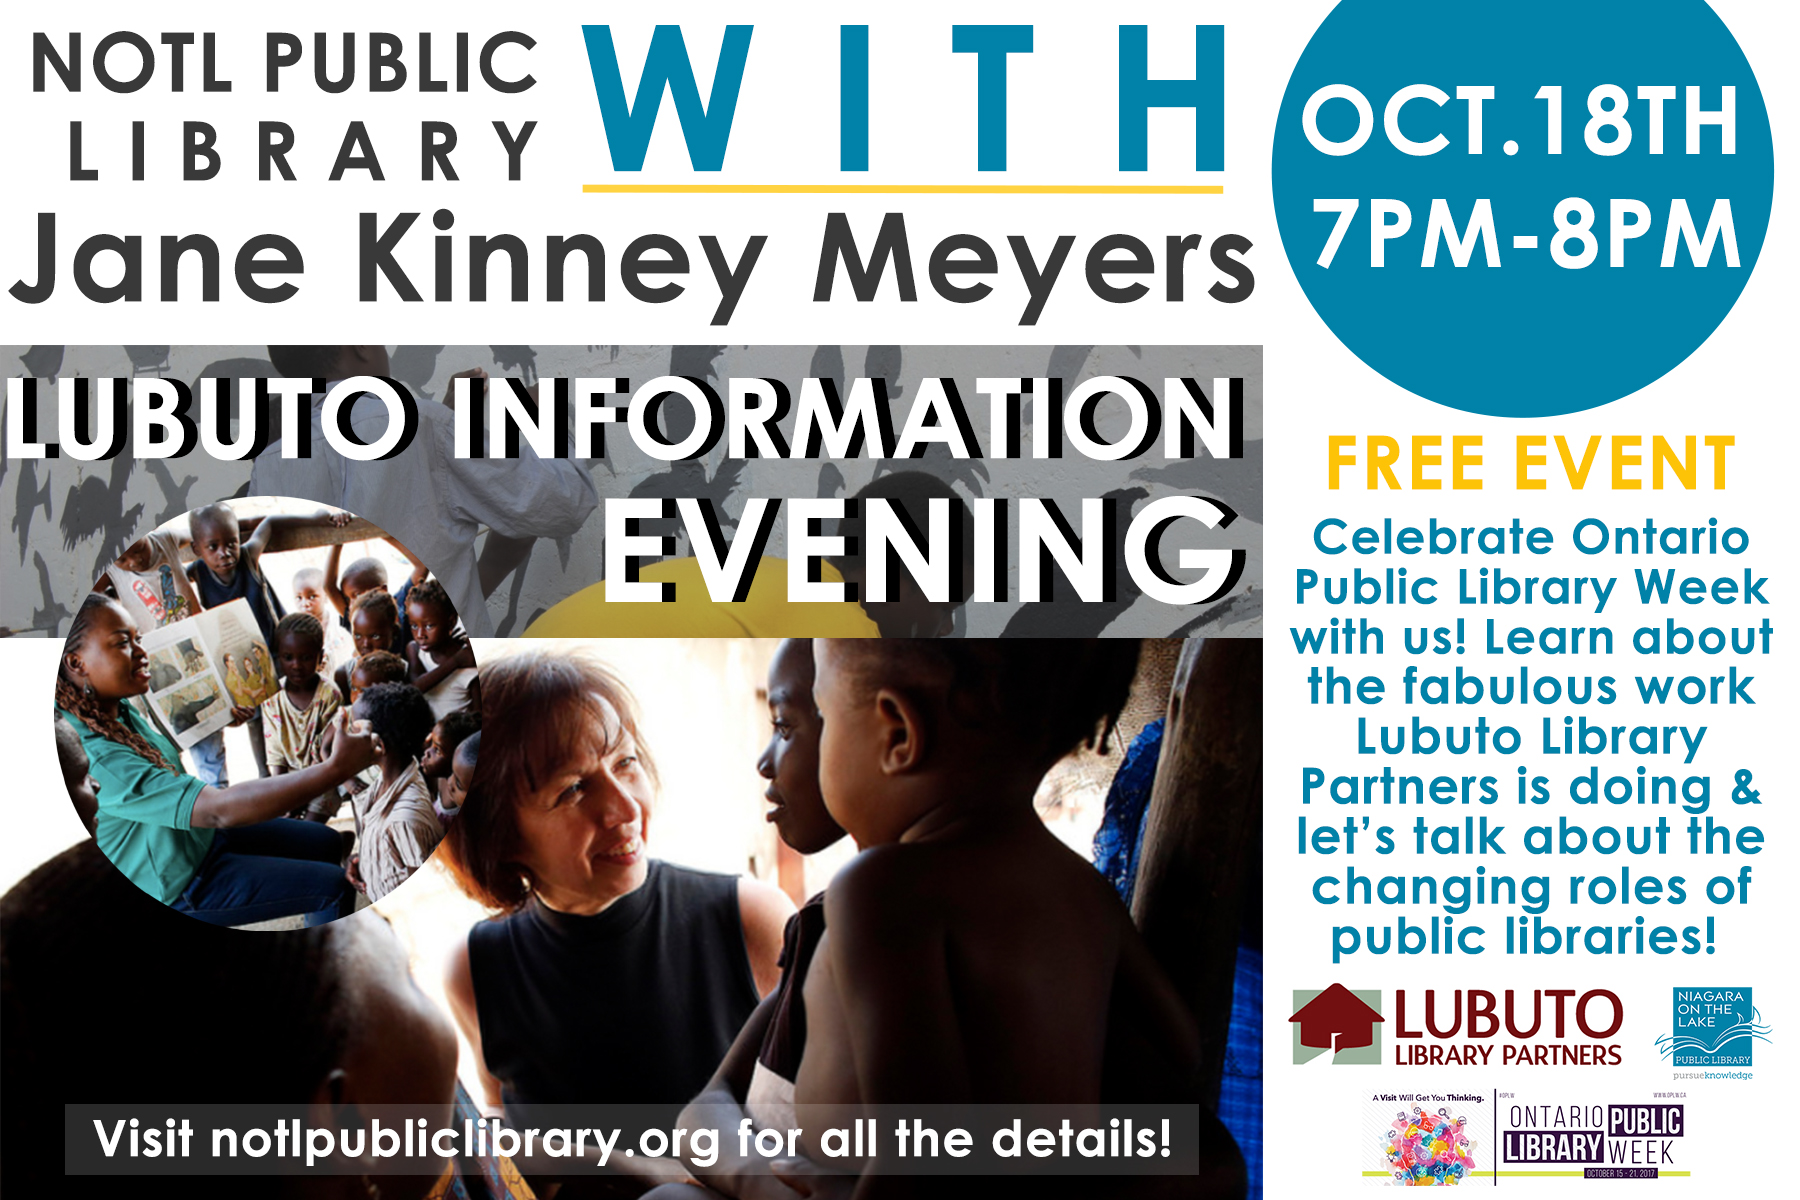 Lubuto Information Evening